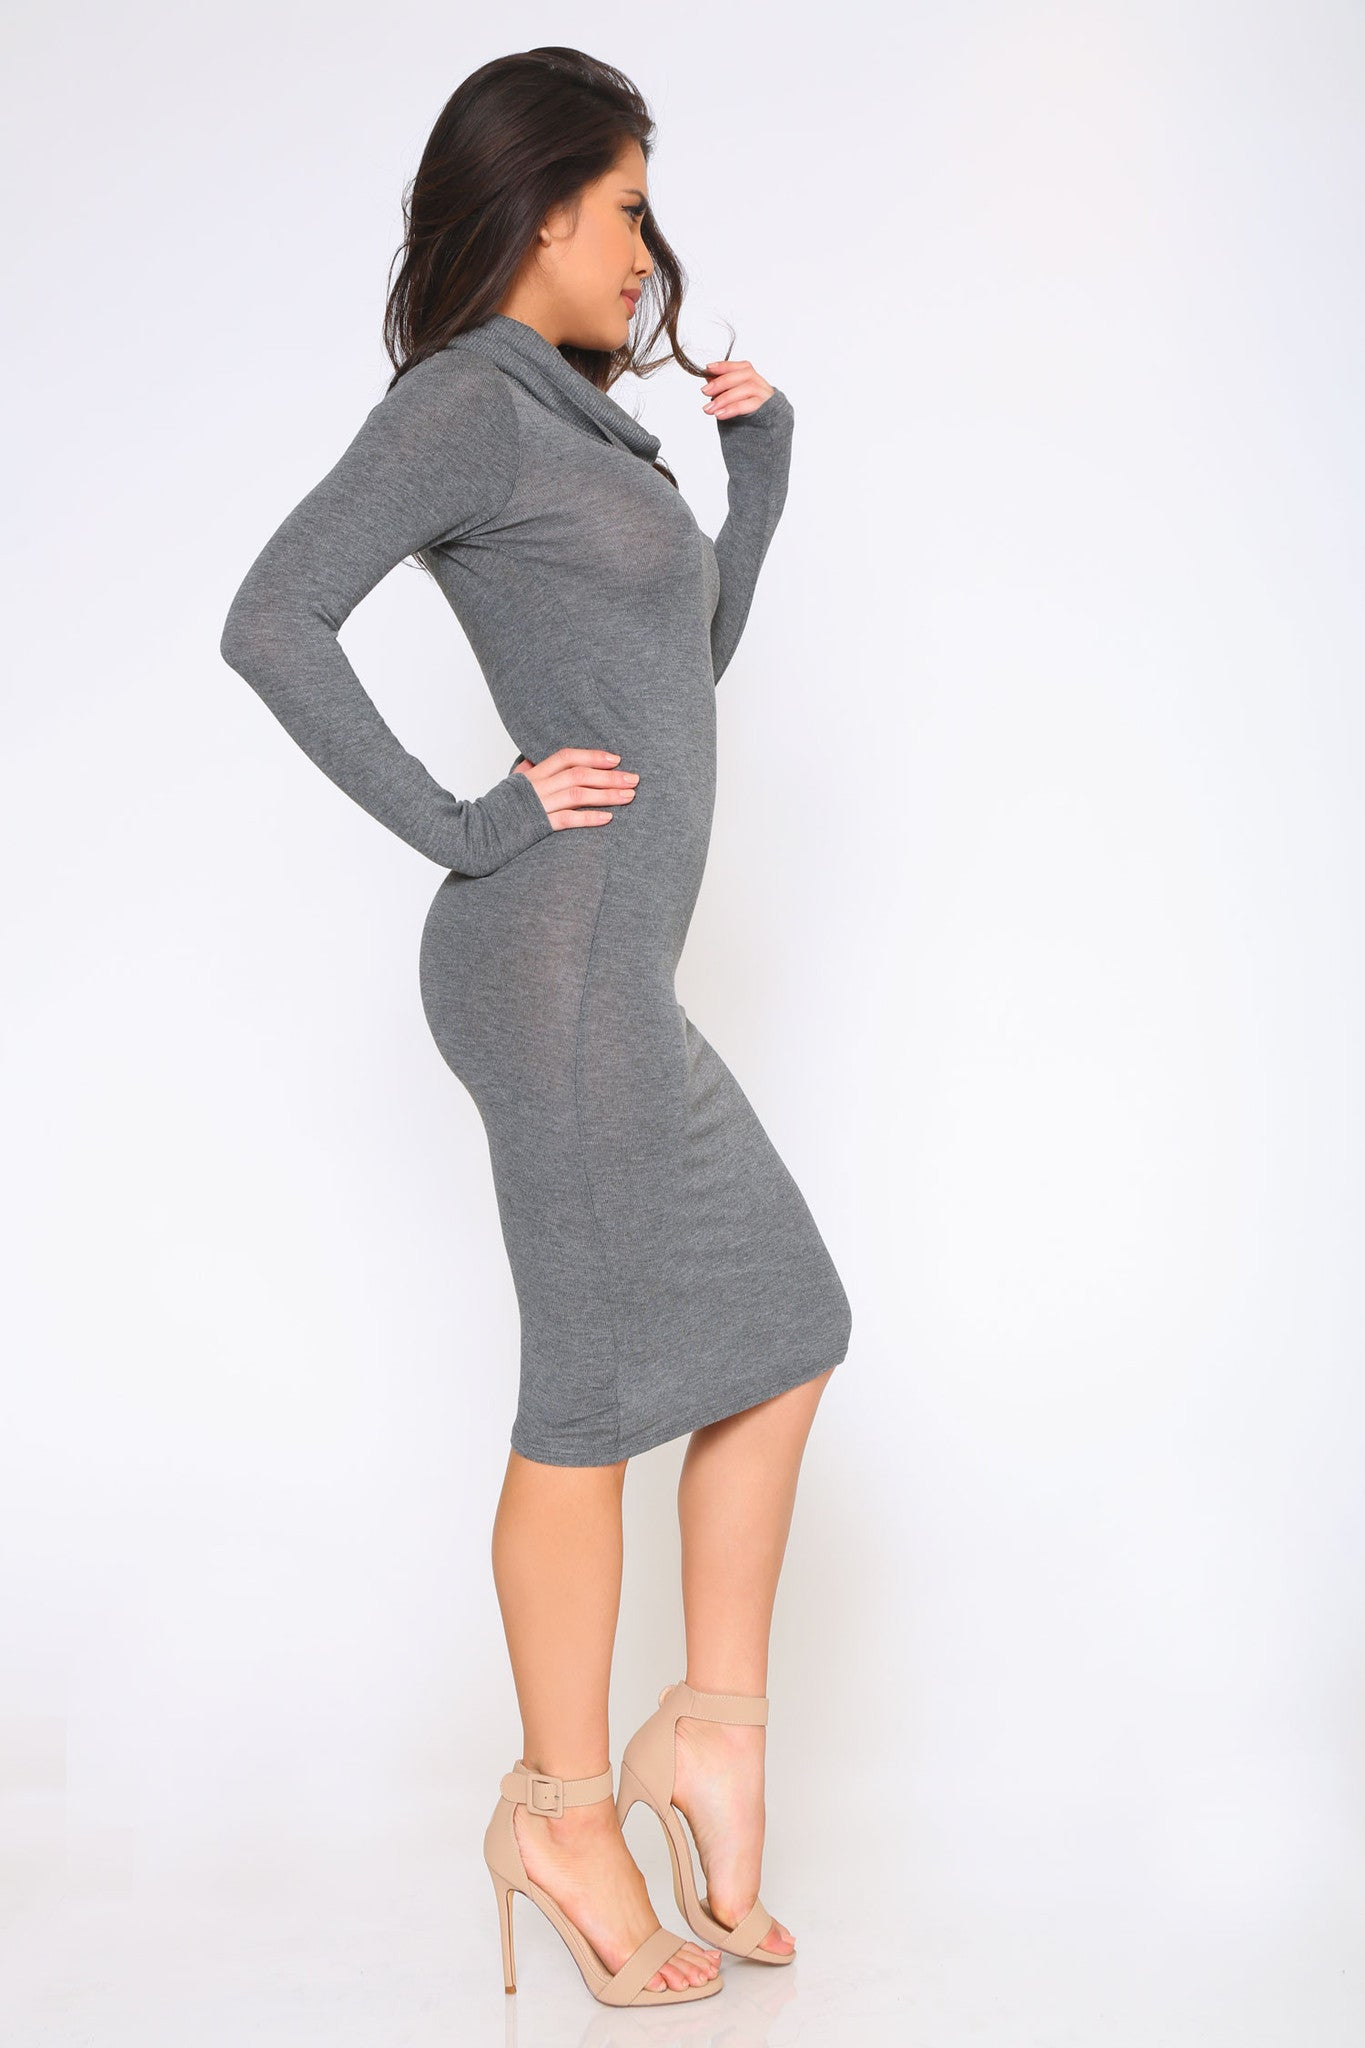 DELANEY DRESS - Glam Envy - 2